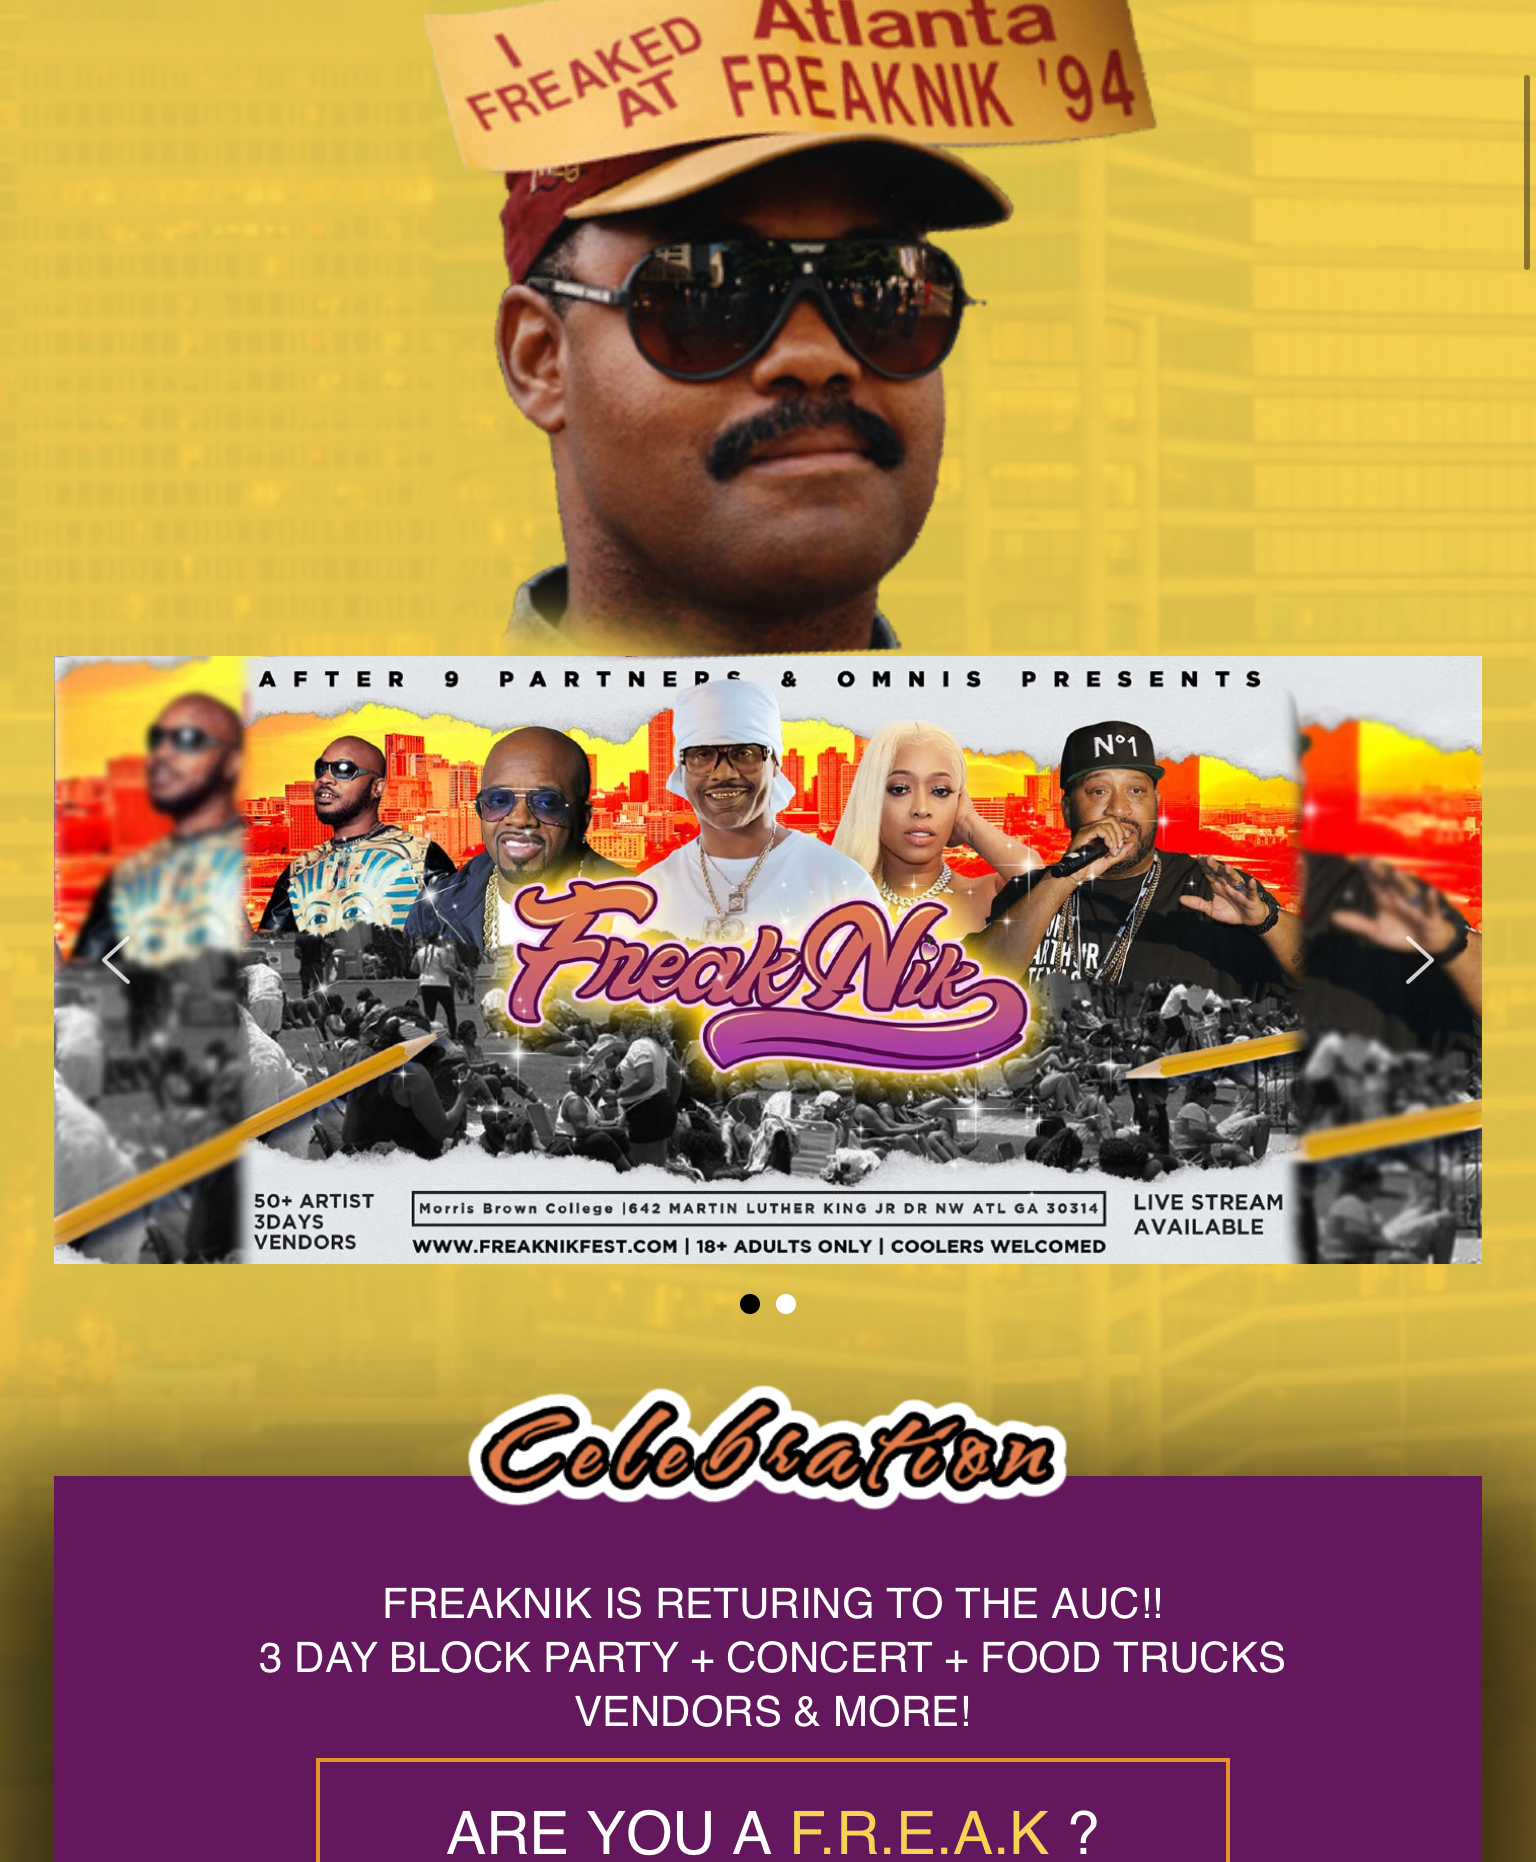 """Organizer 'After 9 Partners' Assures Attendees That """"Freaknik Festival"""" Will Go on As Planned"""